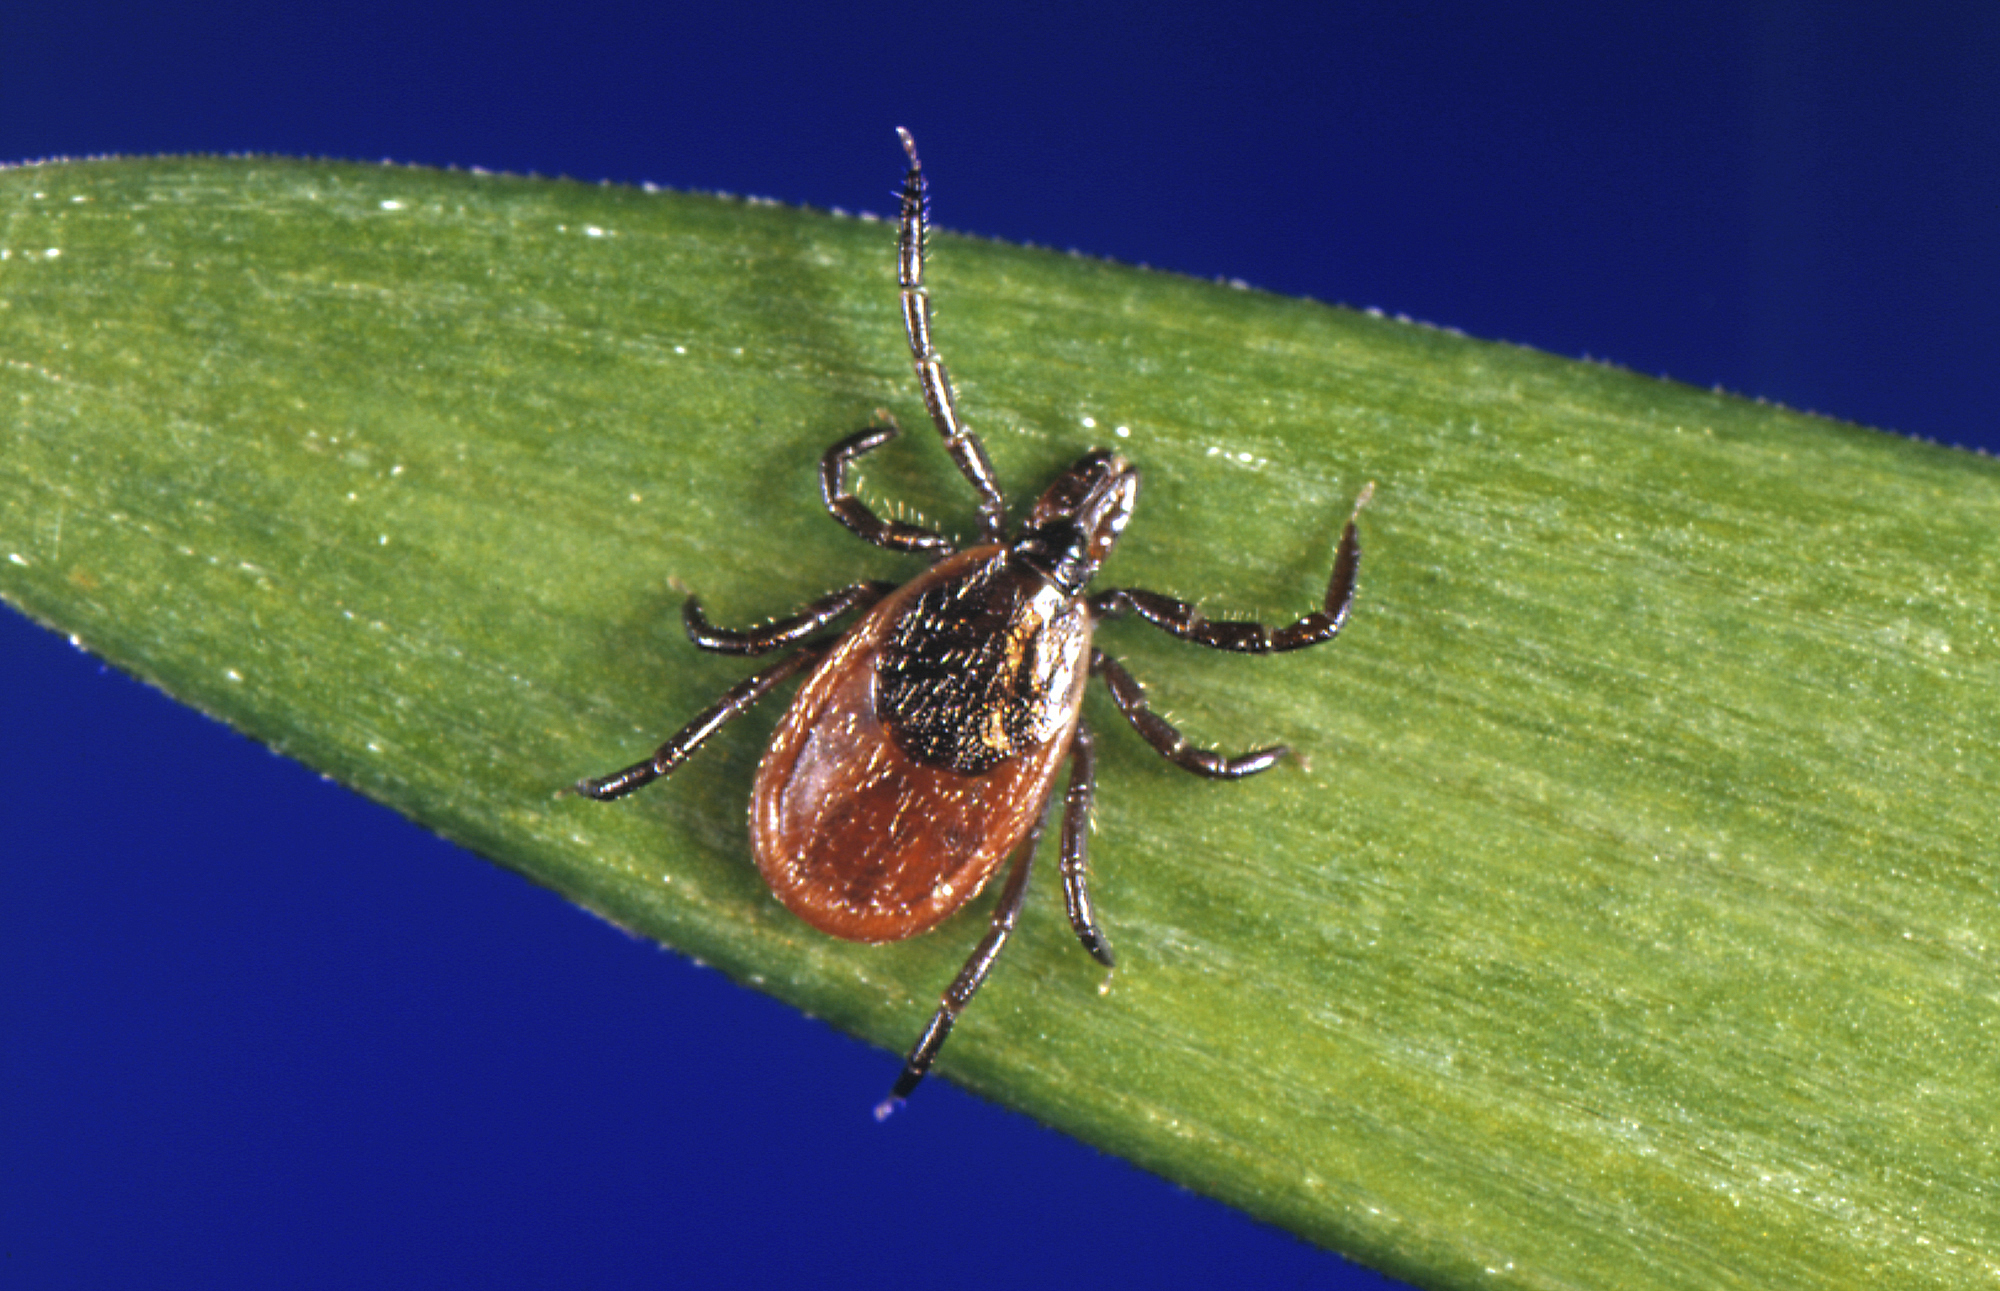 Lyme_Disease_New_England_10662-159532.jpg69502413